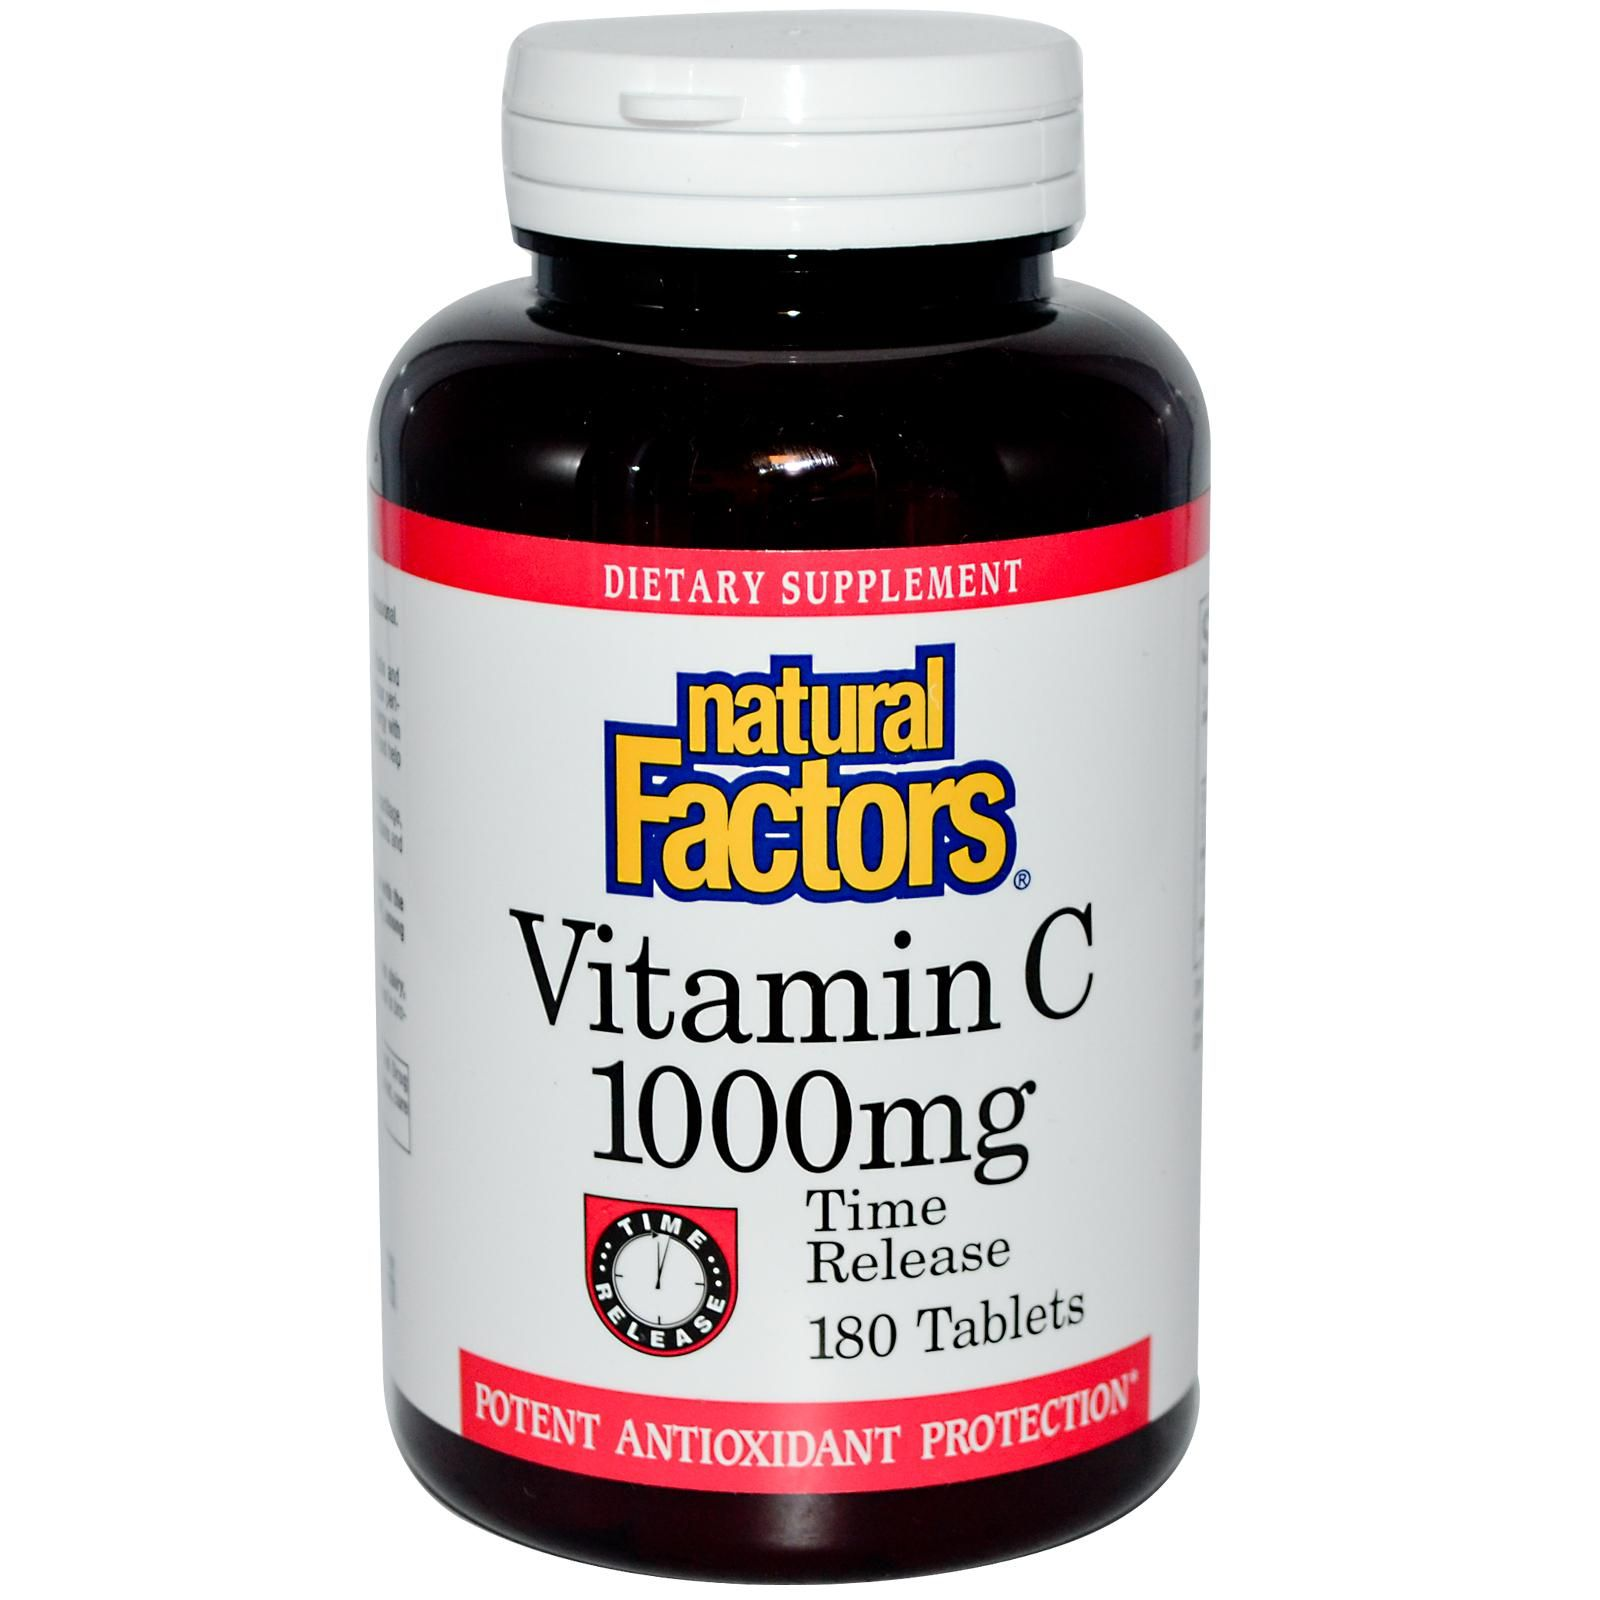 Natural Factors, Vitamin C, Time Release, 1000 mg, 180